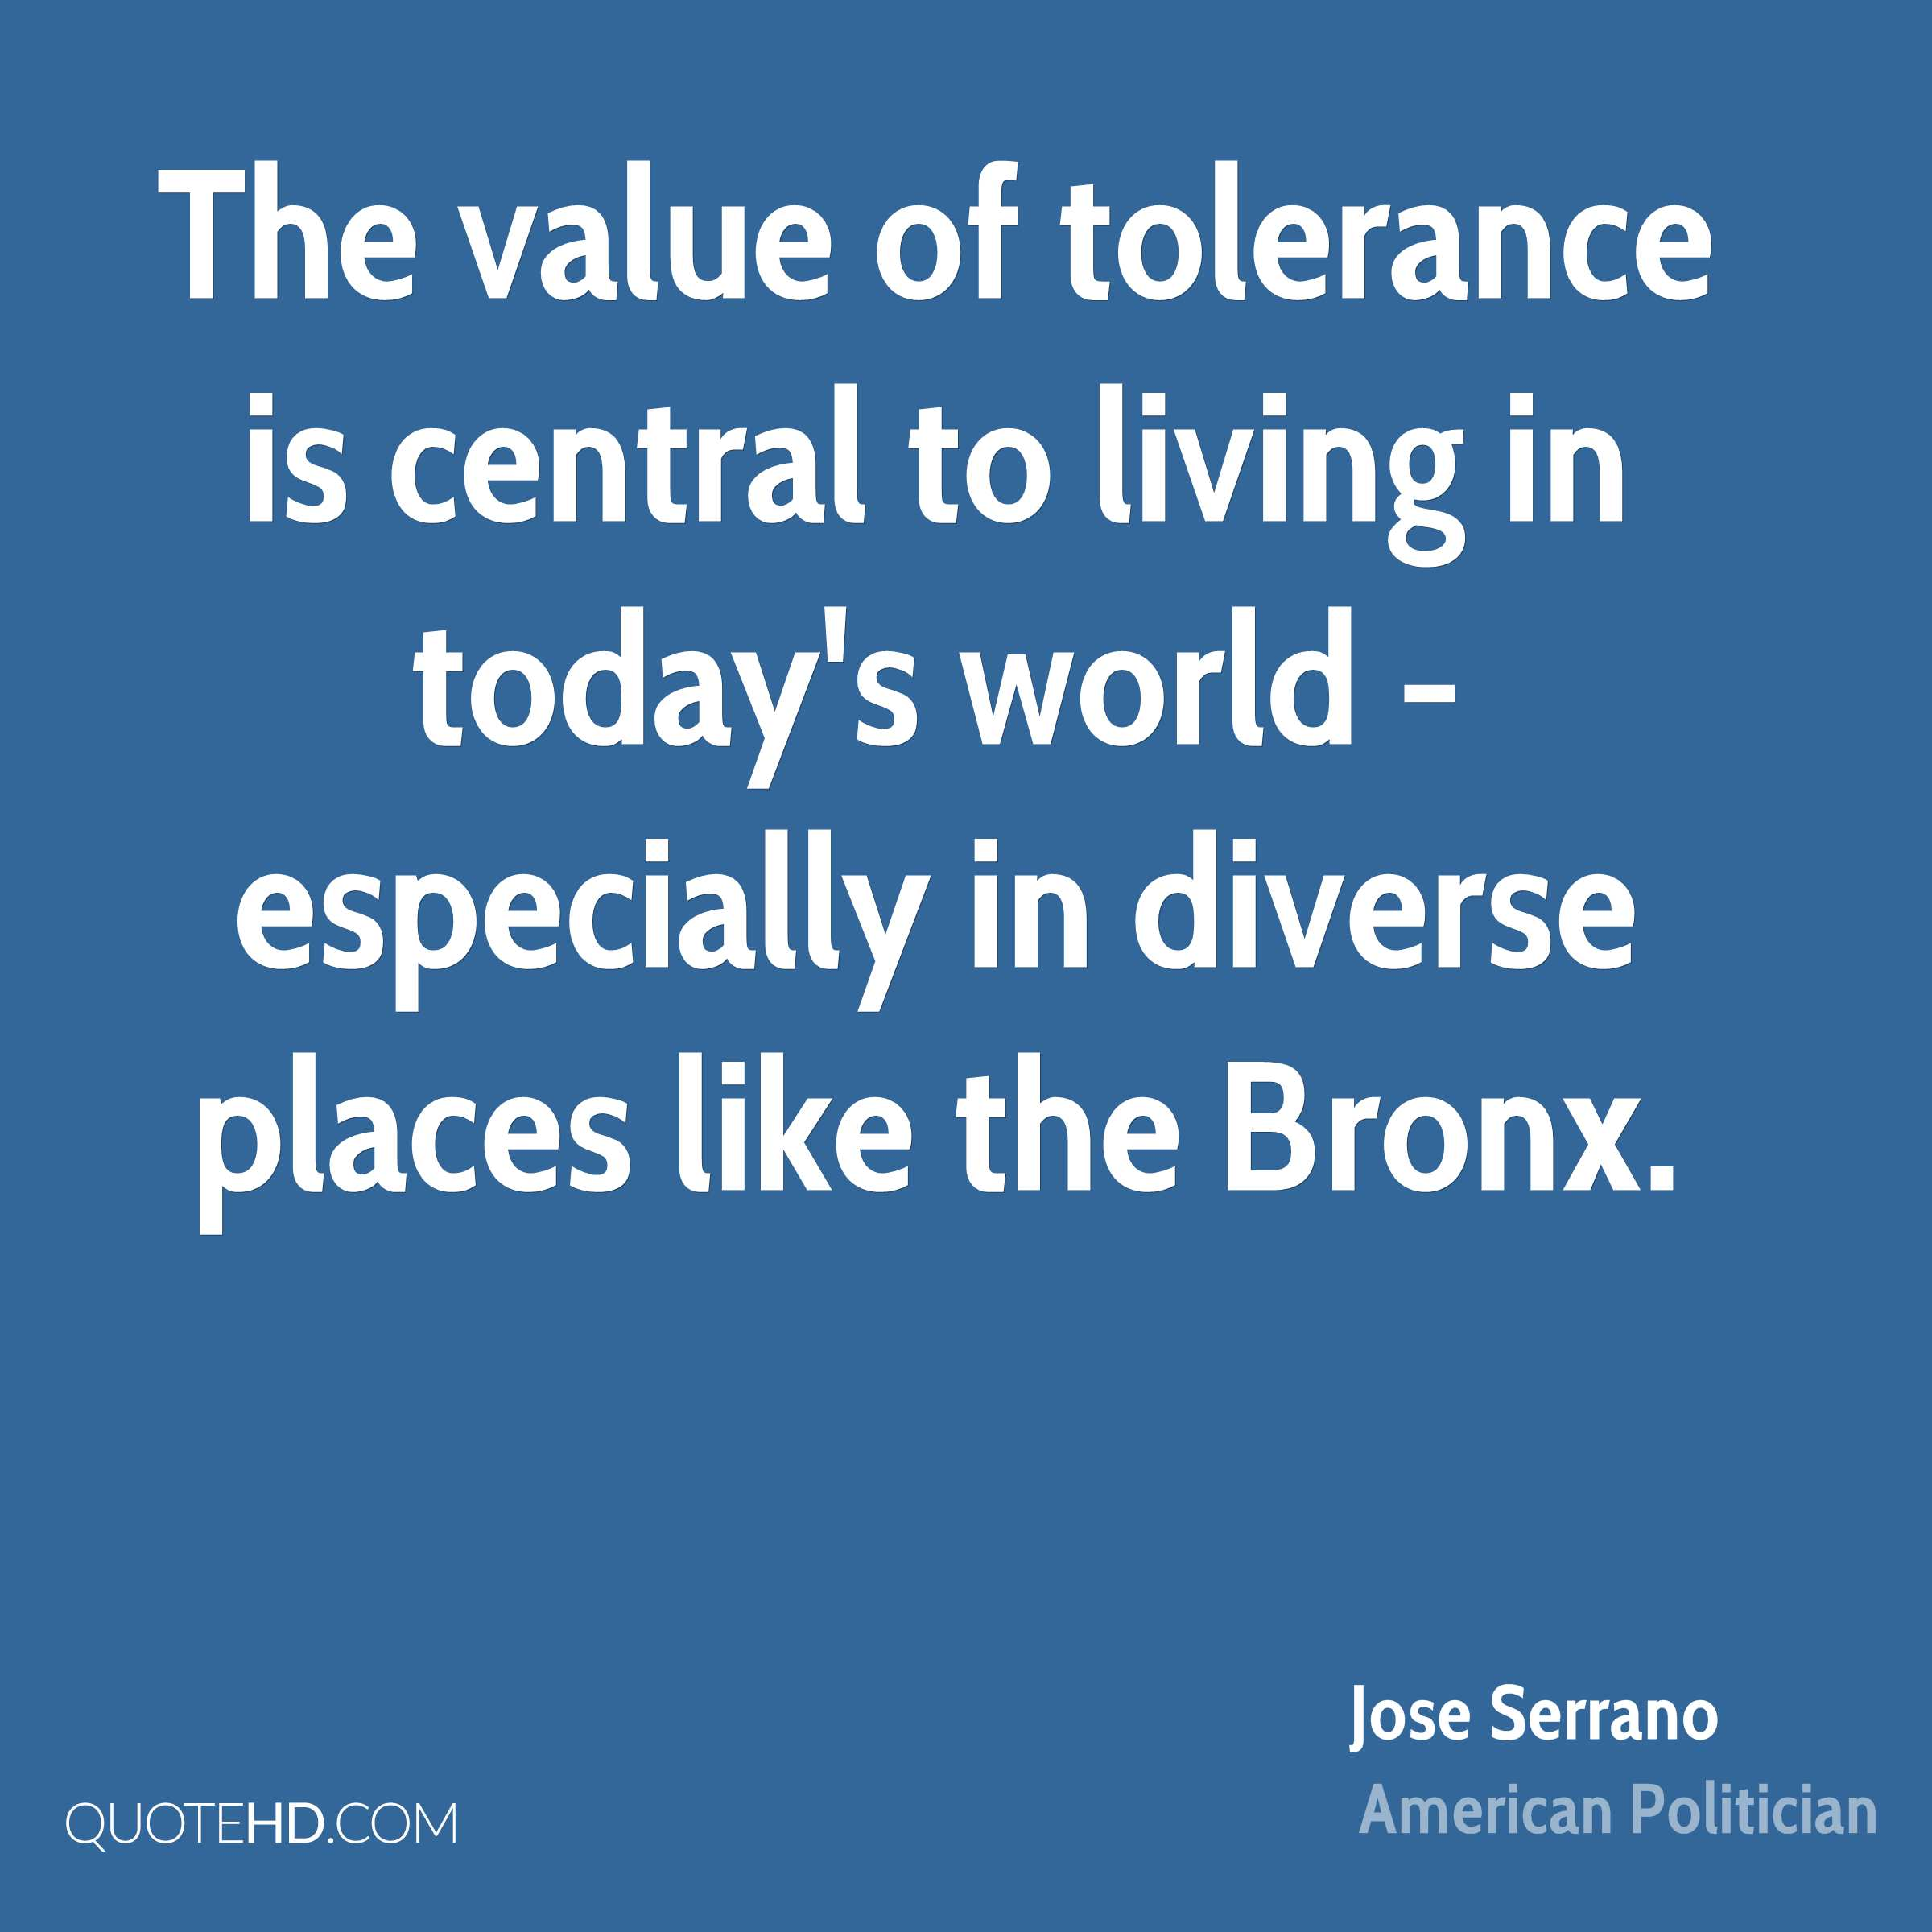 The value of tolerance is central to living in today's world - especially in diverse places like the Bronx.